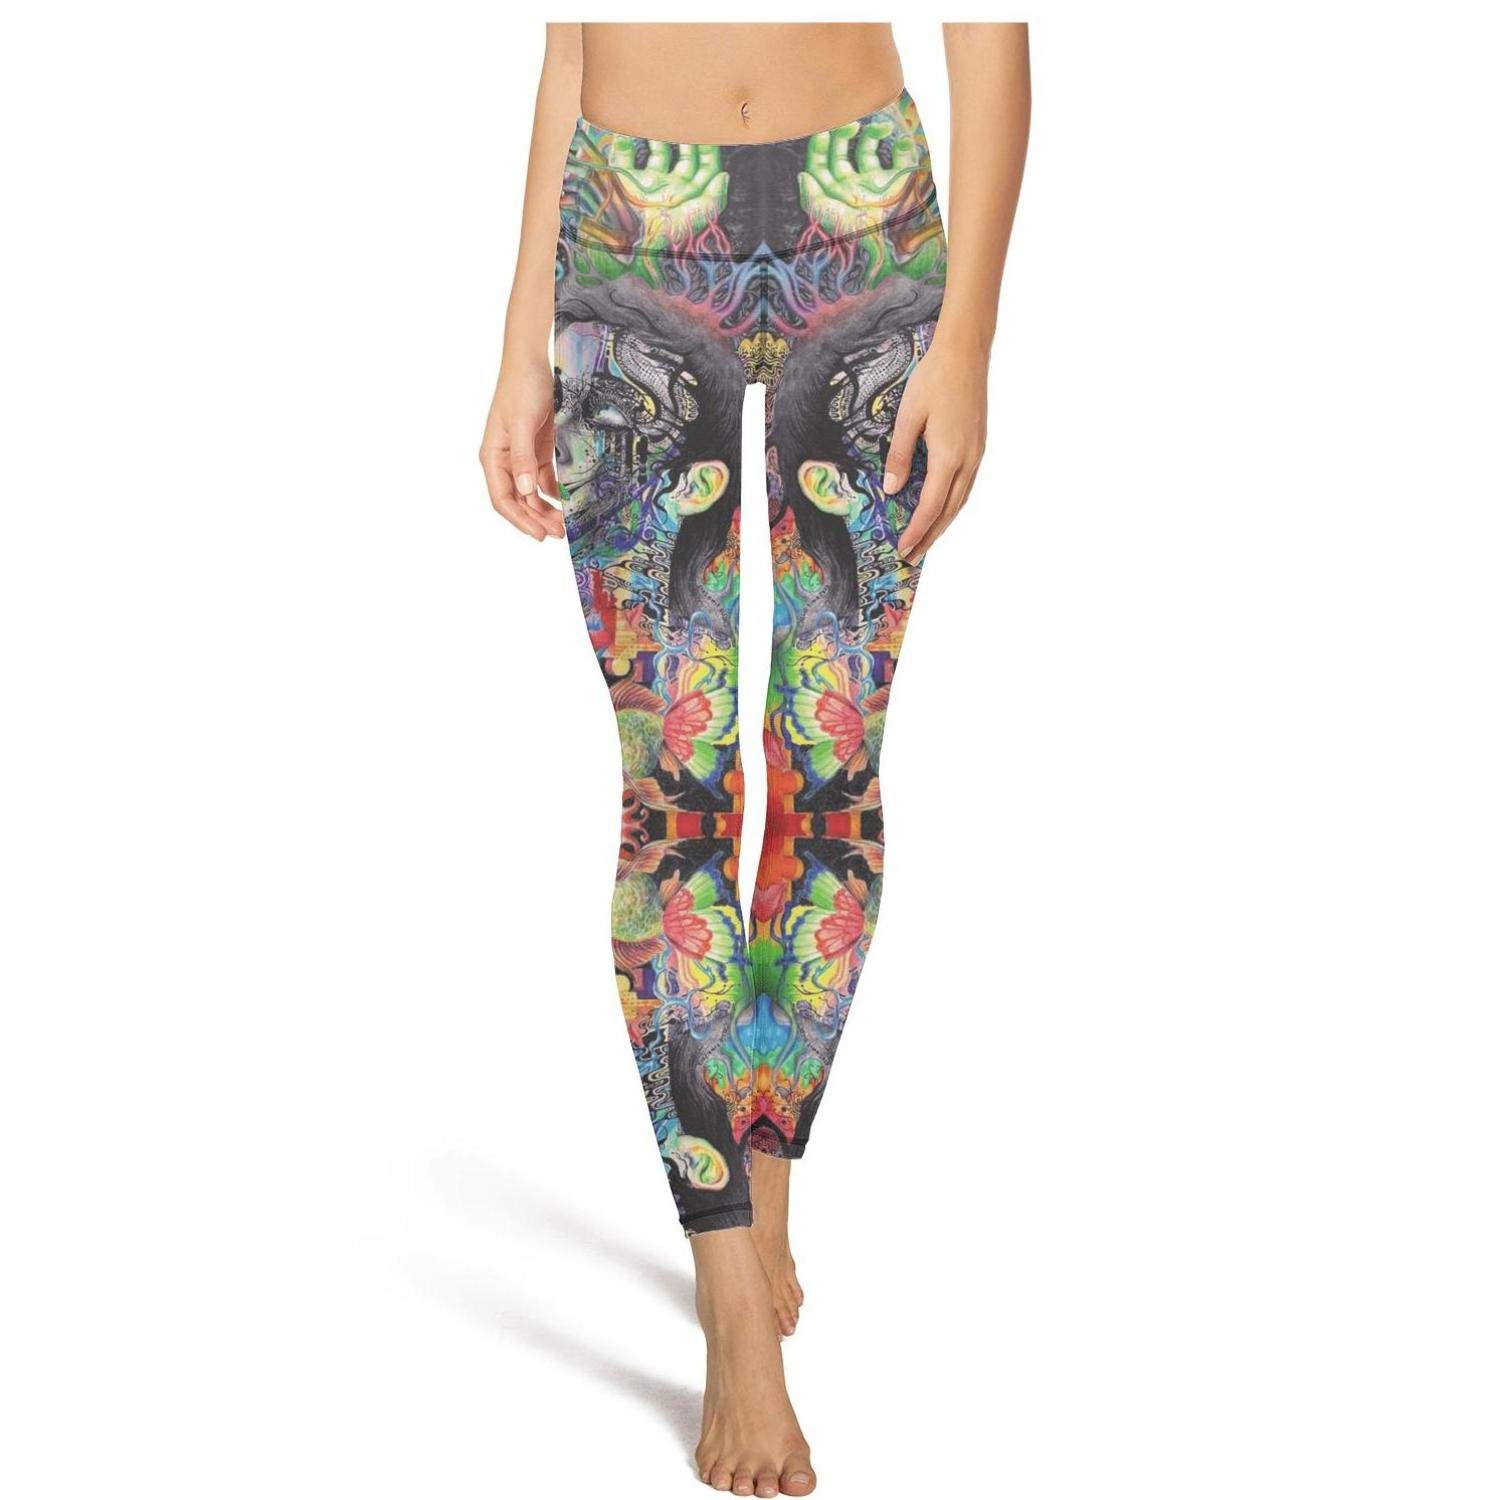 Popular high Waisted Leggings for Women Training Yoga Pants ...